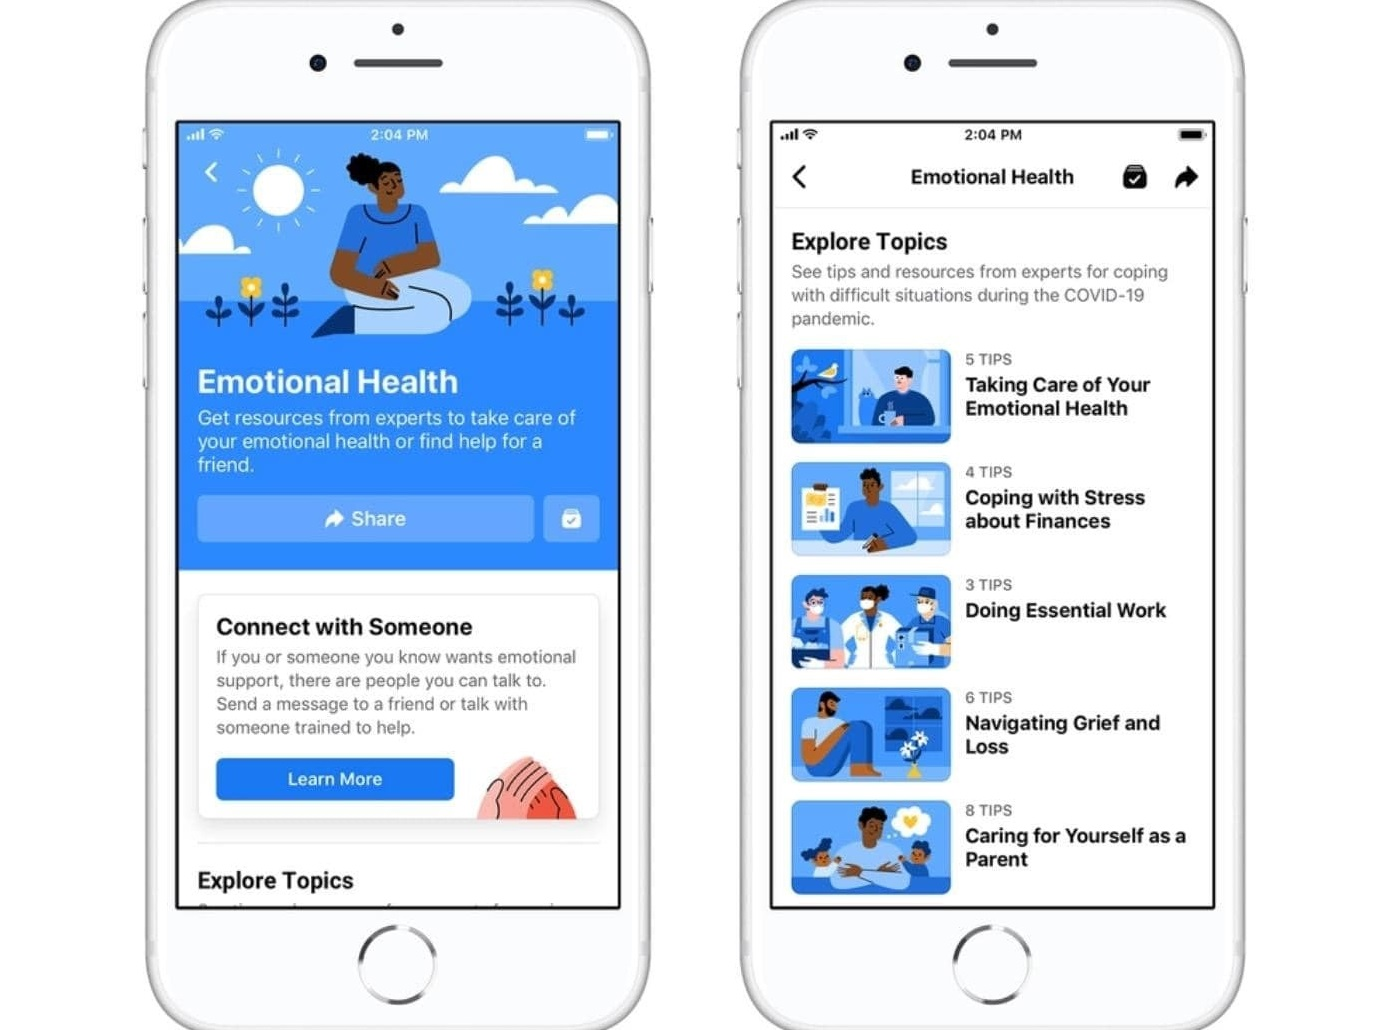 To mark the Mental Health Awareness Month, Facebook has rolled out new Emotional Health Resources on its platform